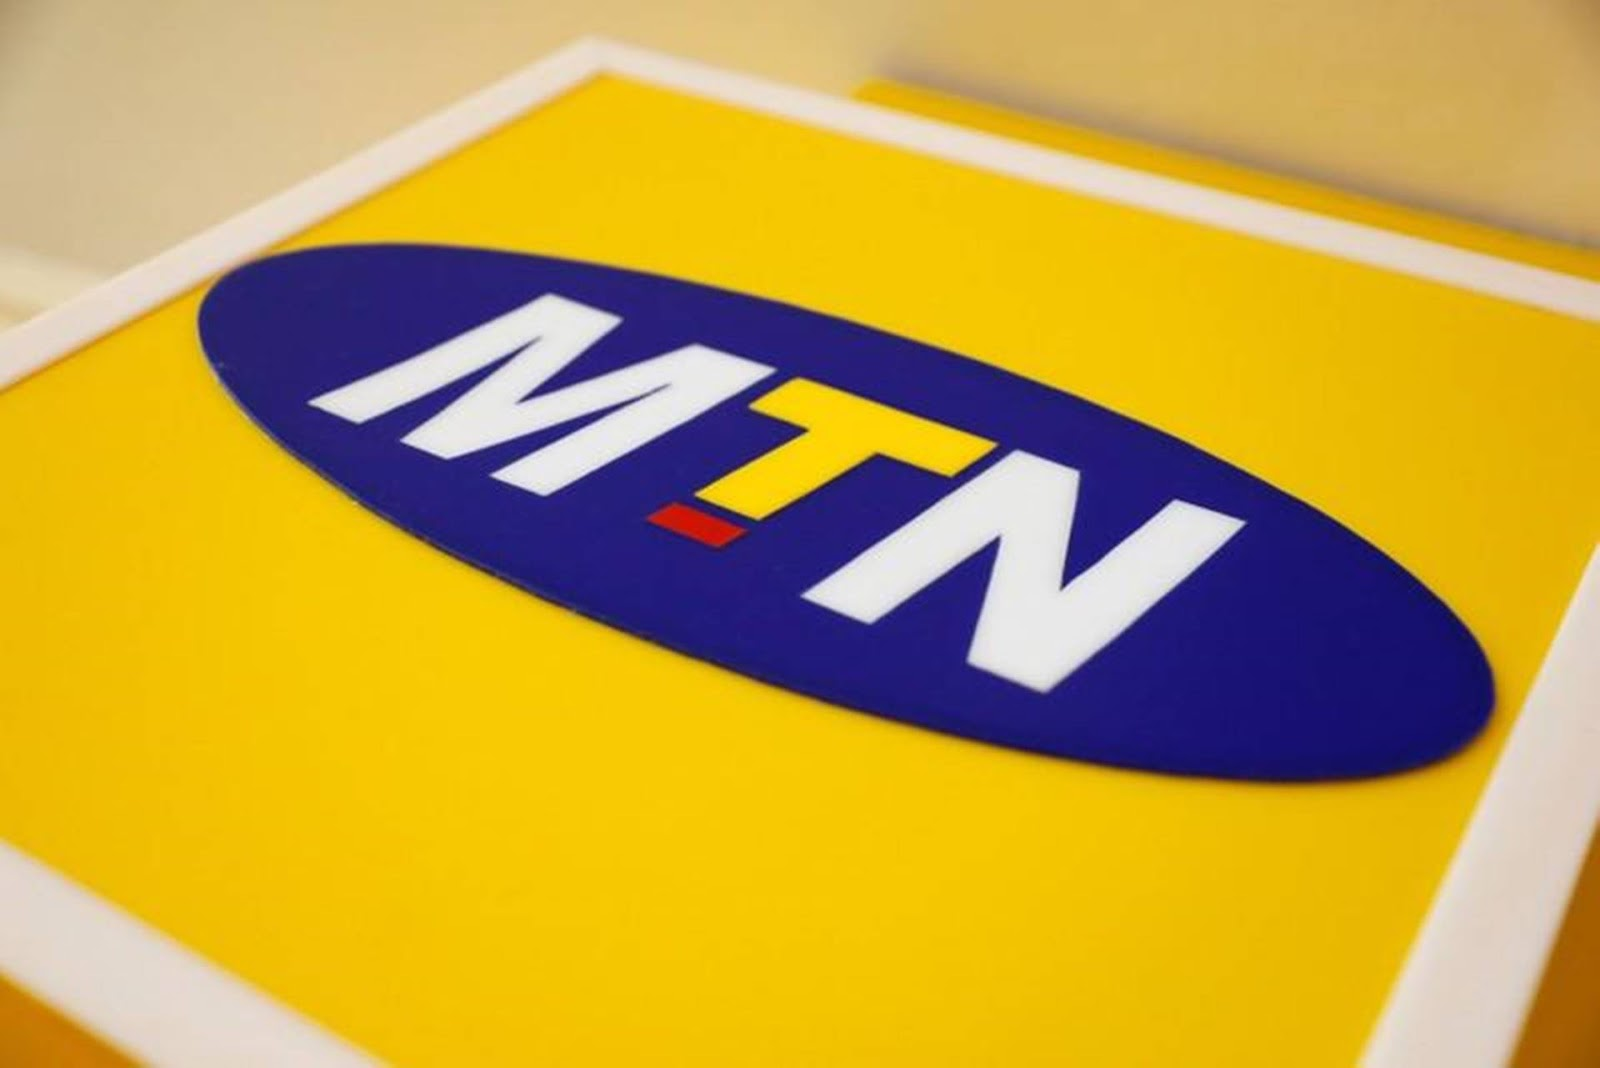 MTN Cameroon Free 3G/ 4G Internet Browsing Codes